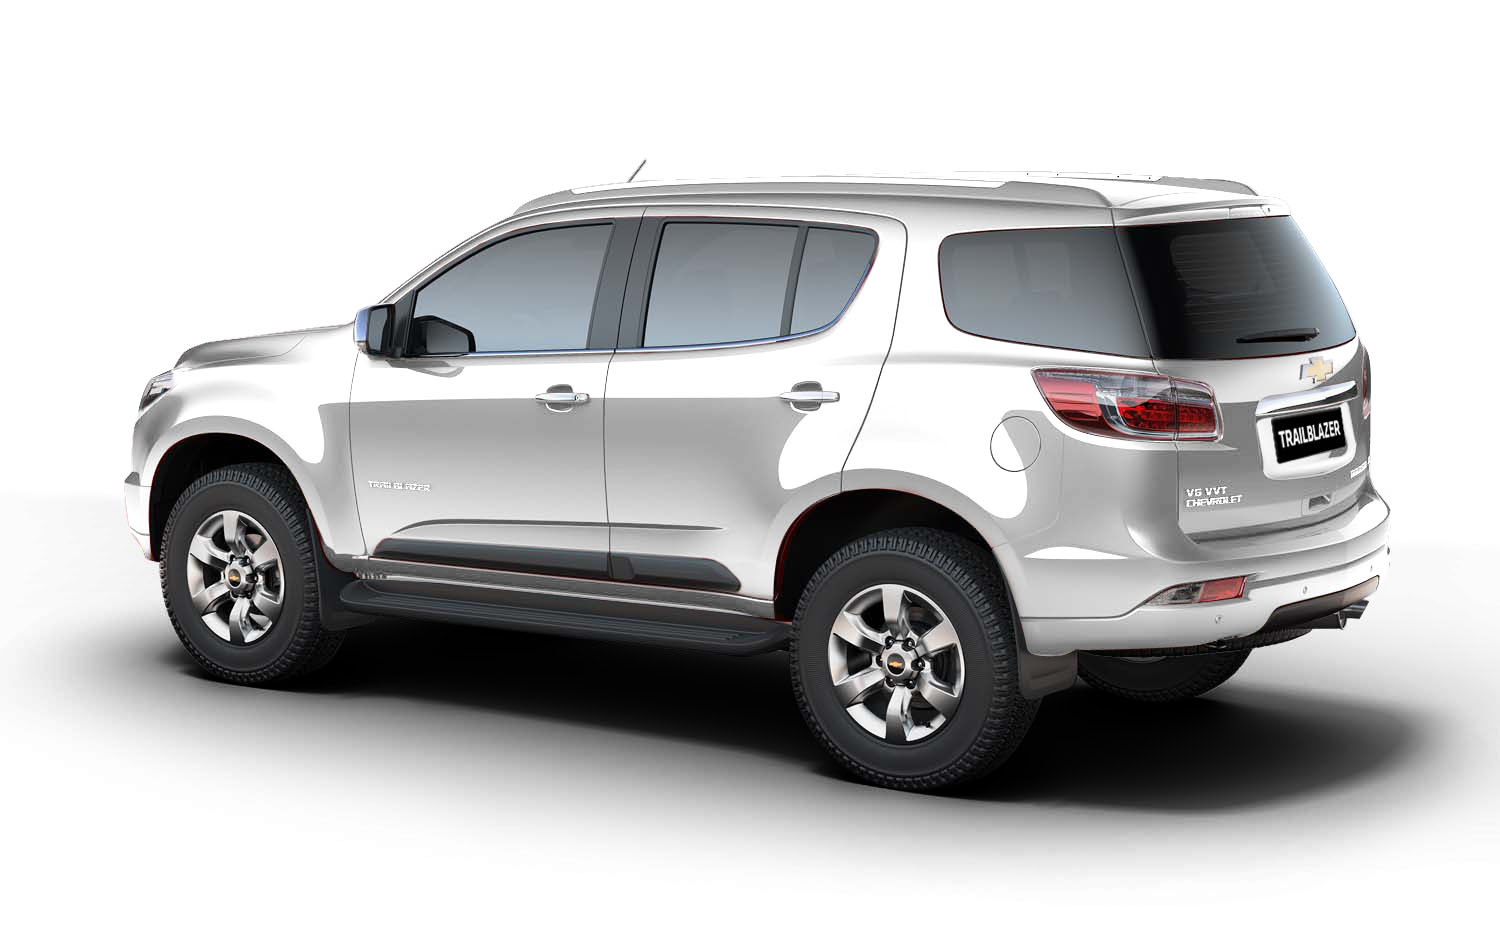 2015 New Chevrolet Trailblazer Full Details And Launch Date | Bike Car Art Photos Images ...